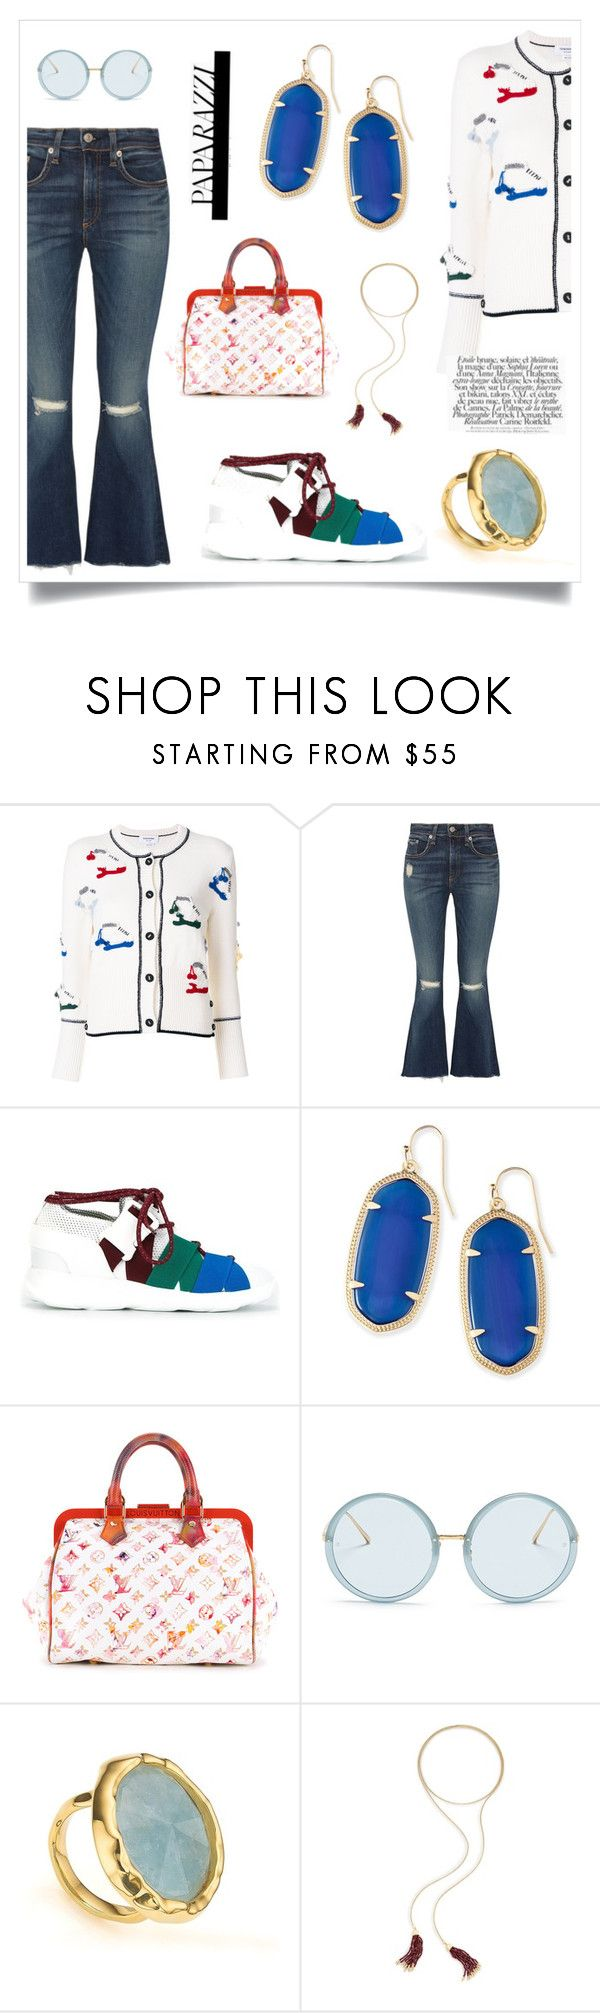 """""""Crewneck Cardigan With Crochet..**"""" by yagna on Polyvore featuring Thom Browne, rag & bone, Christopher Kane, Kendra Scott, Louis Vuitton, Linda Farrow and Monica Vinader"""